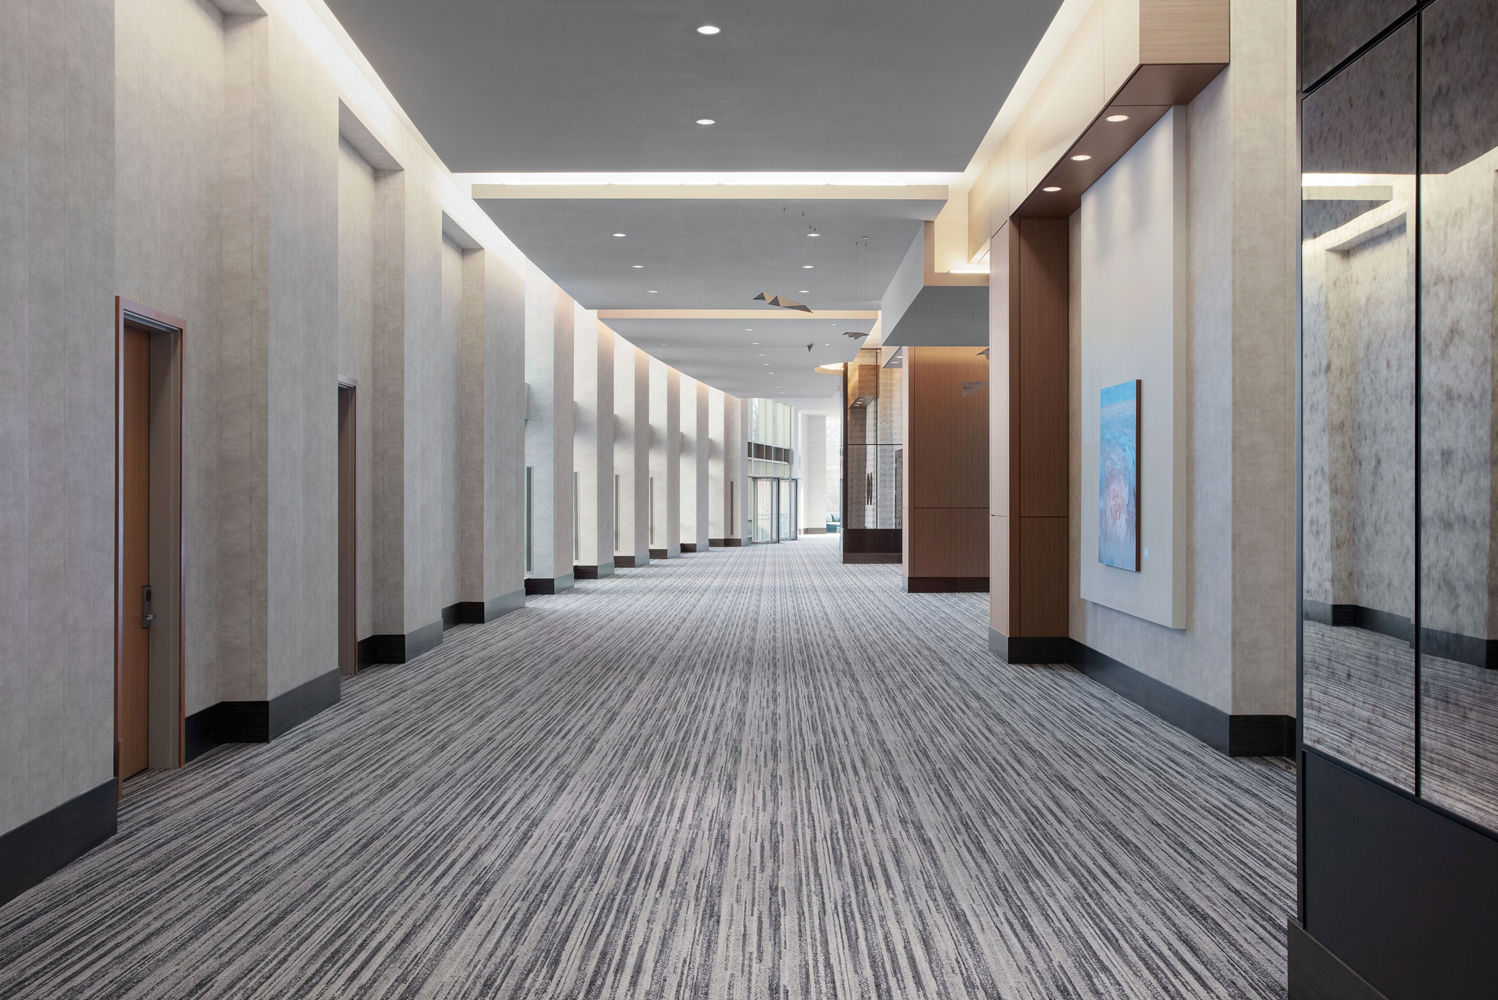 The hallways of Loews Chicago O'Hare Hotel are now flanked with artwork, leading to the meeting and event spaces.